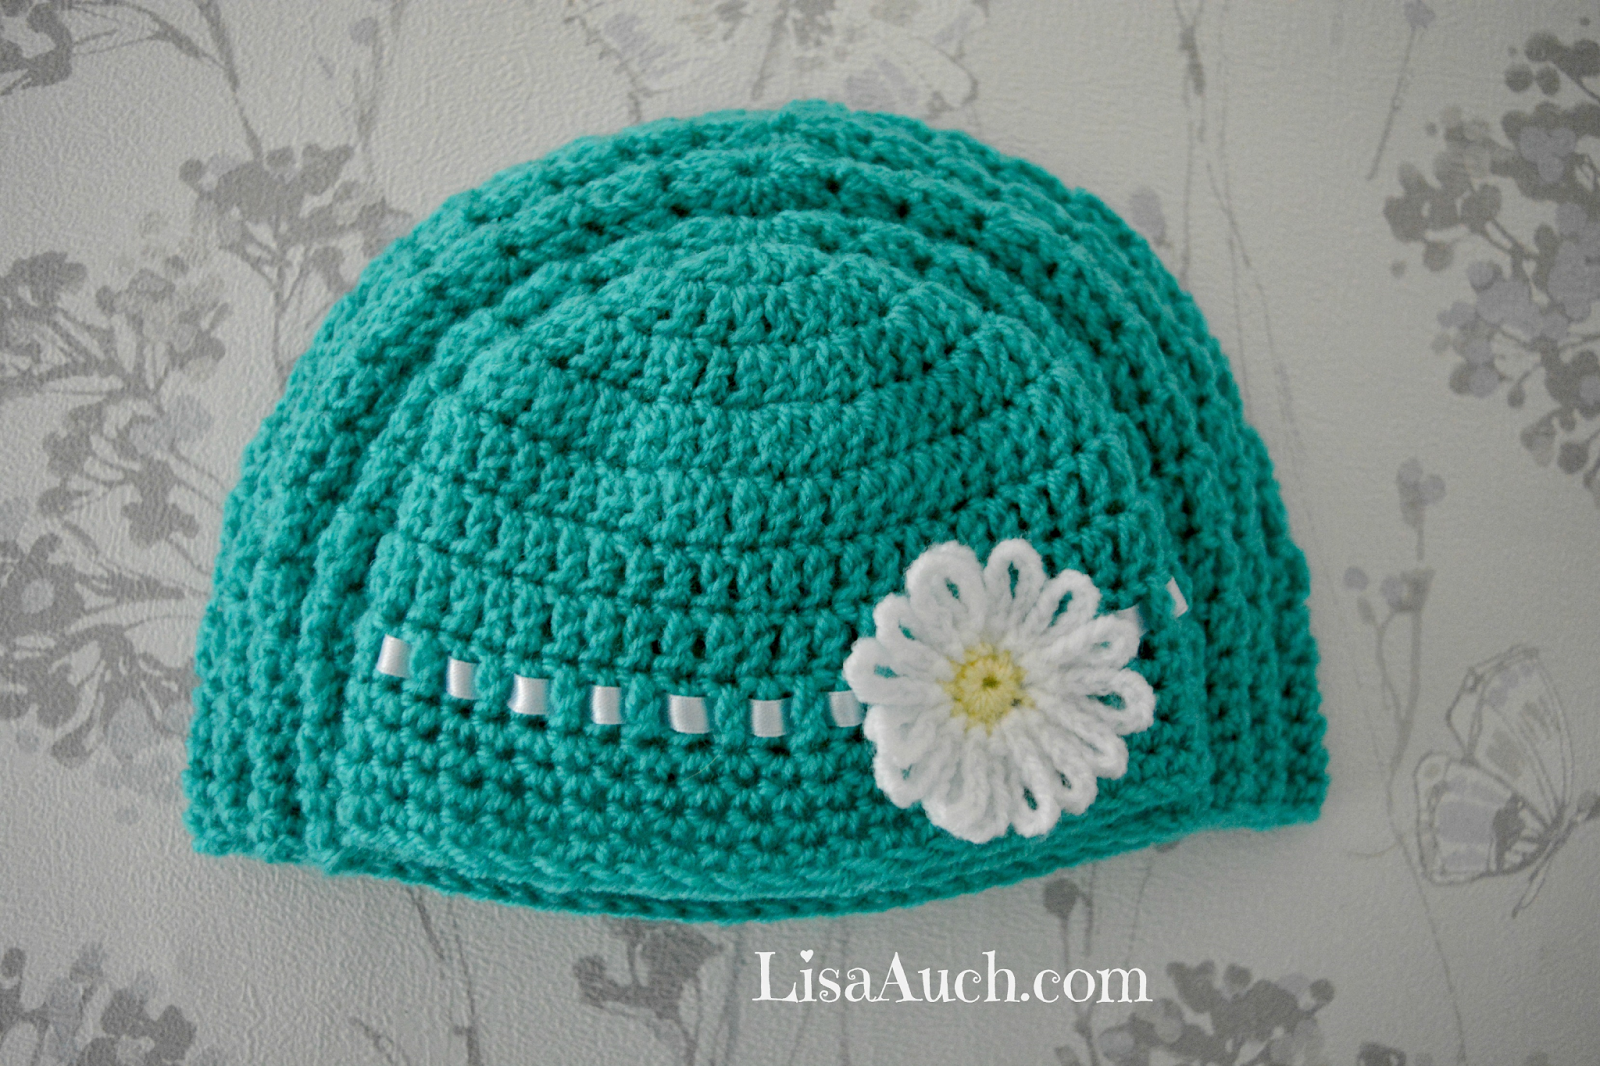 Free Crochet Pattern For Infant Hat : Free Crochet Patterns and Designs by LisaAuch: Double ...